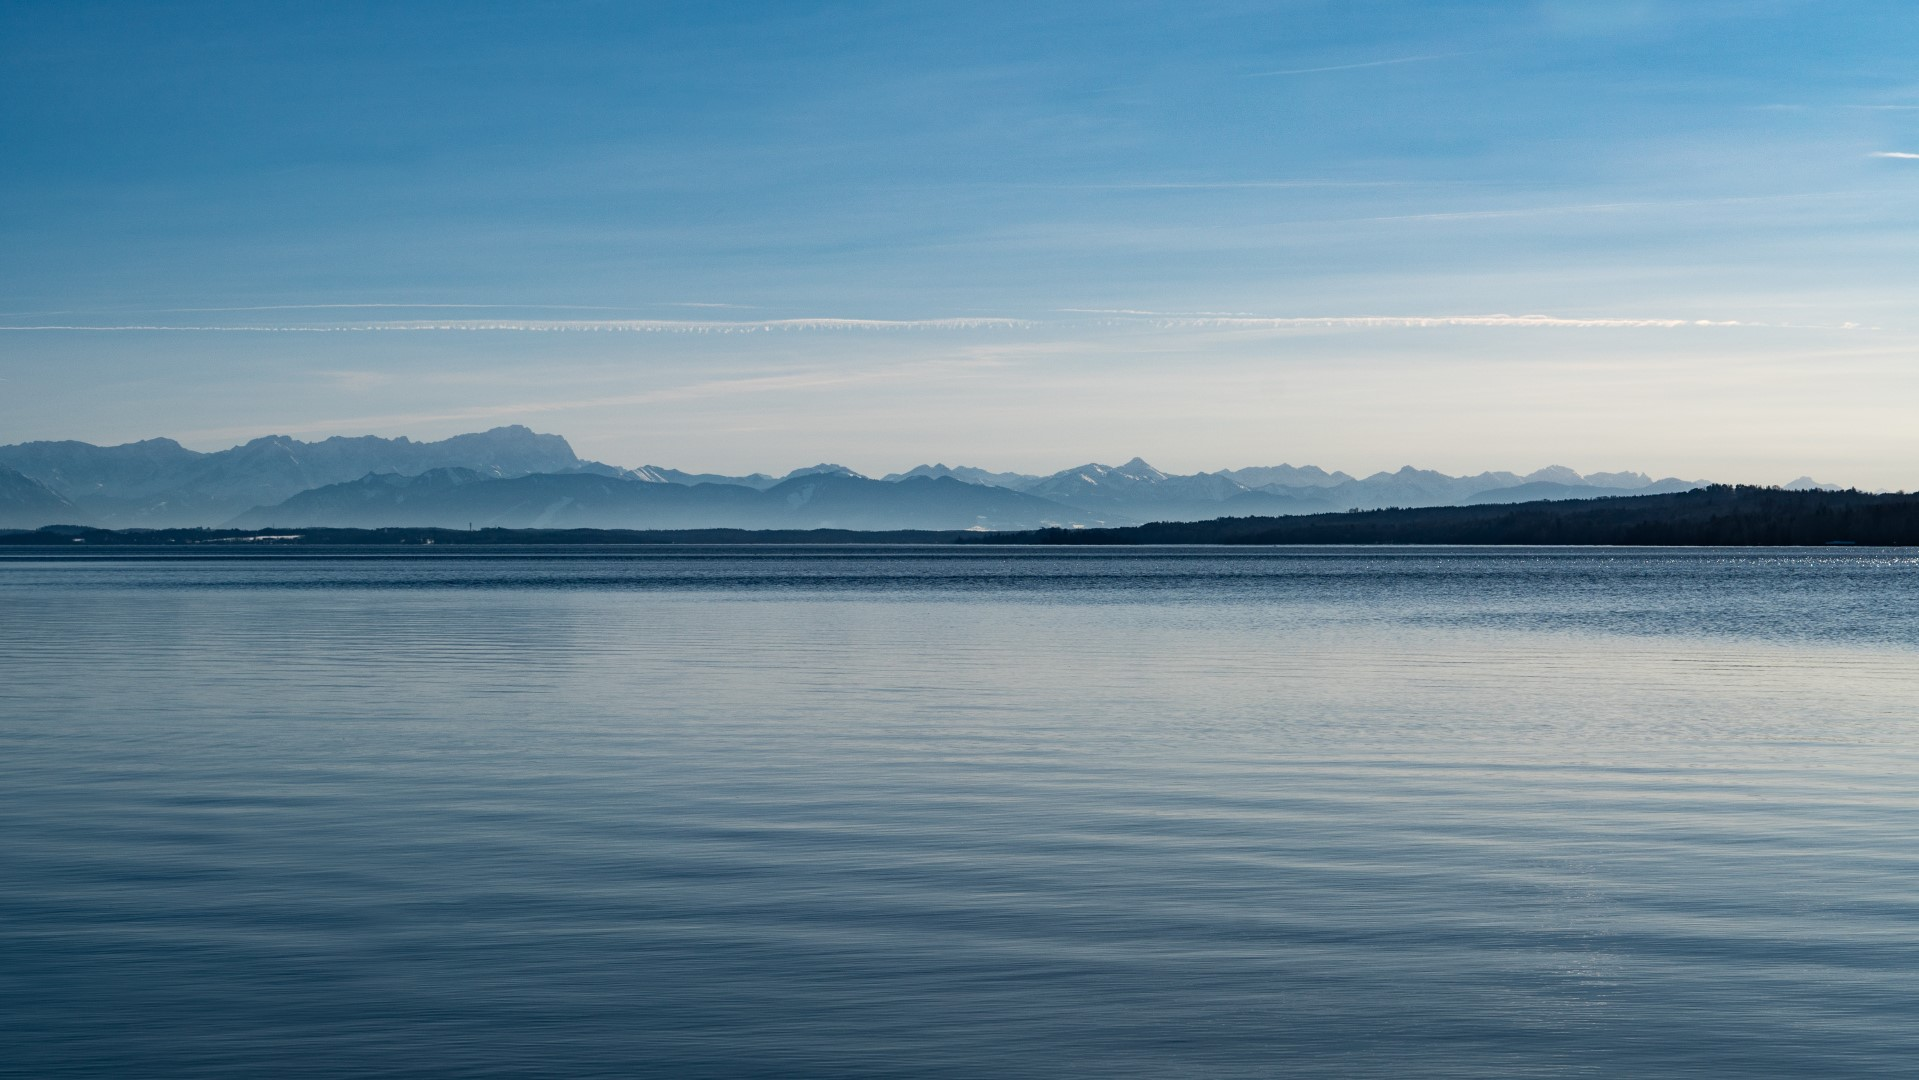 lakes in munich: starnberger see